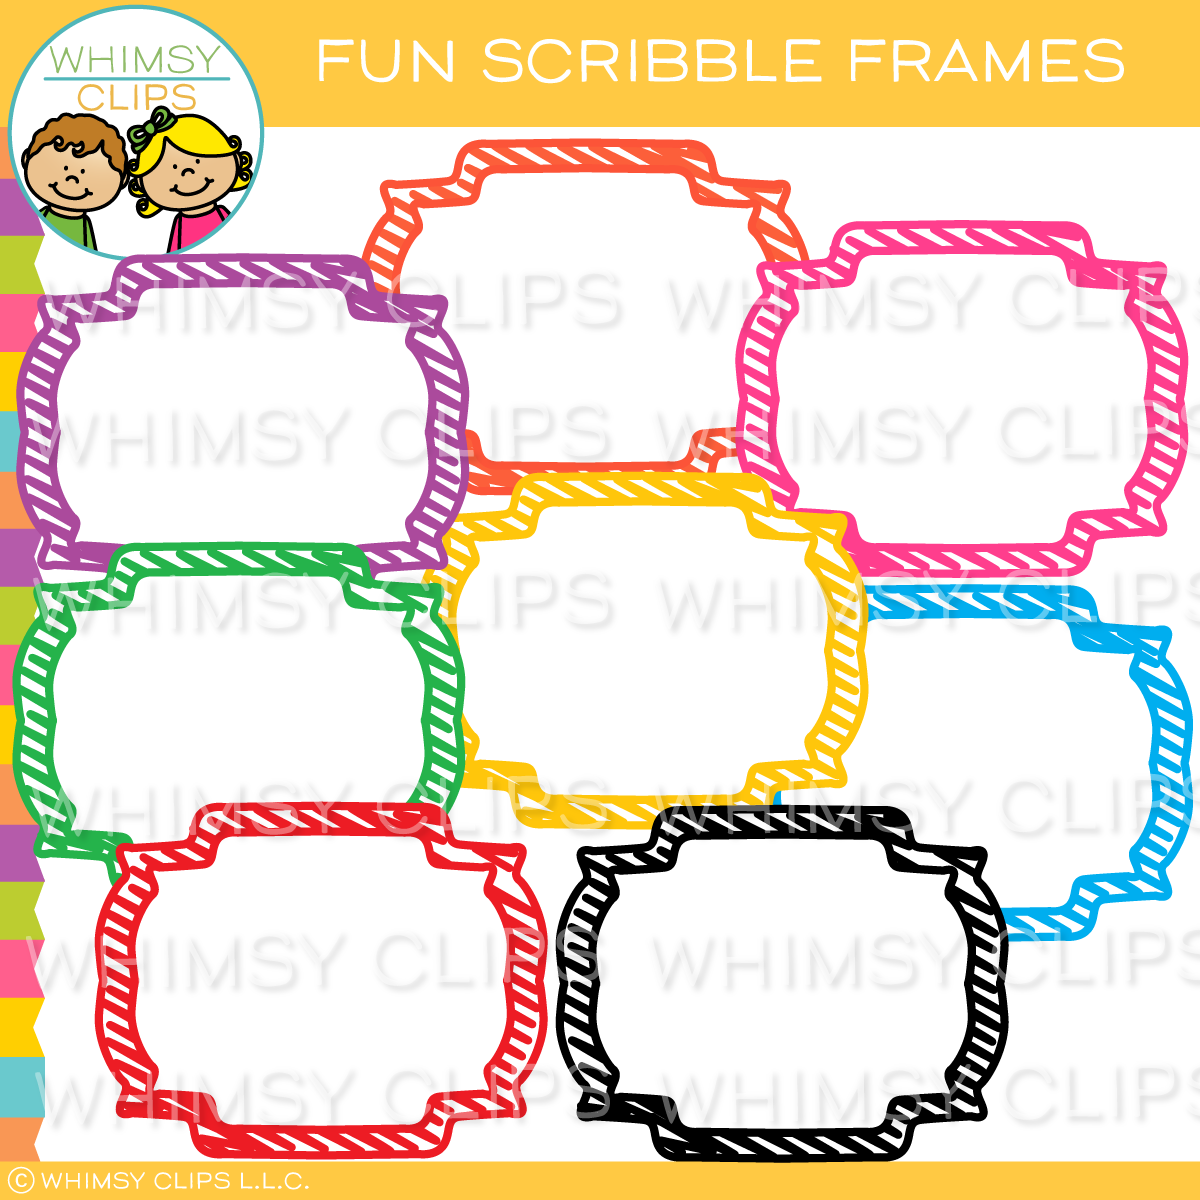 Fun Scribble Frames Clip Art